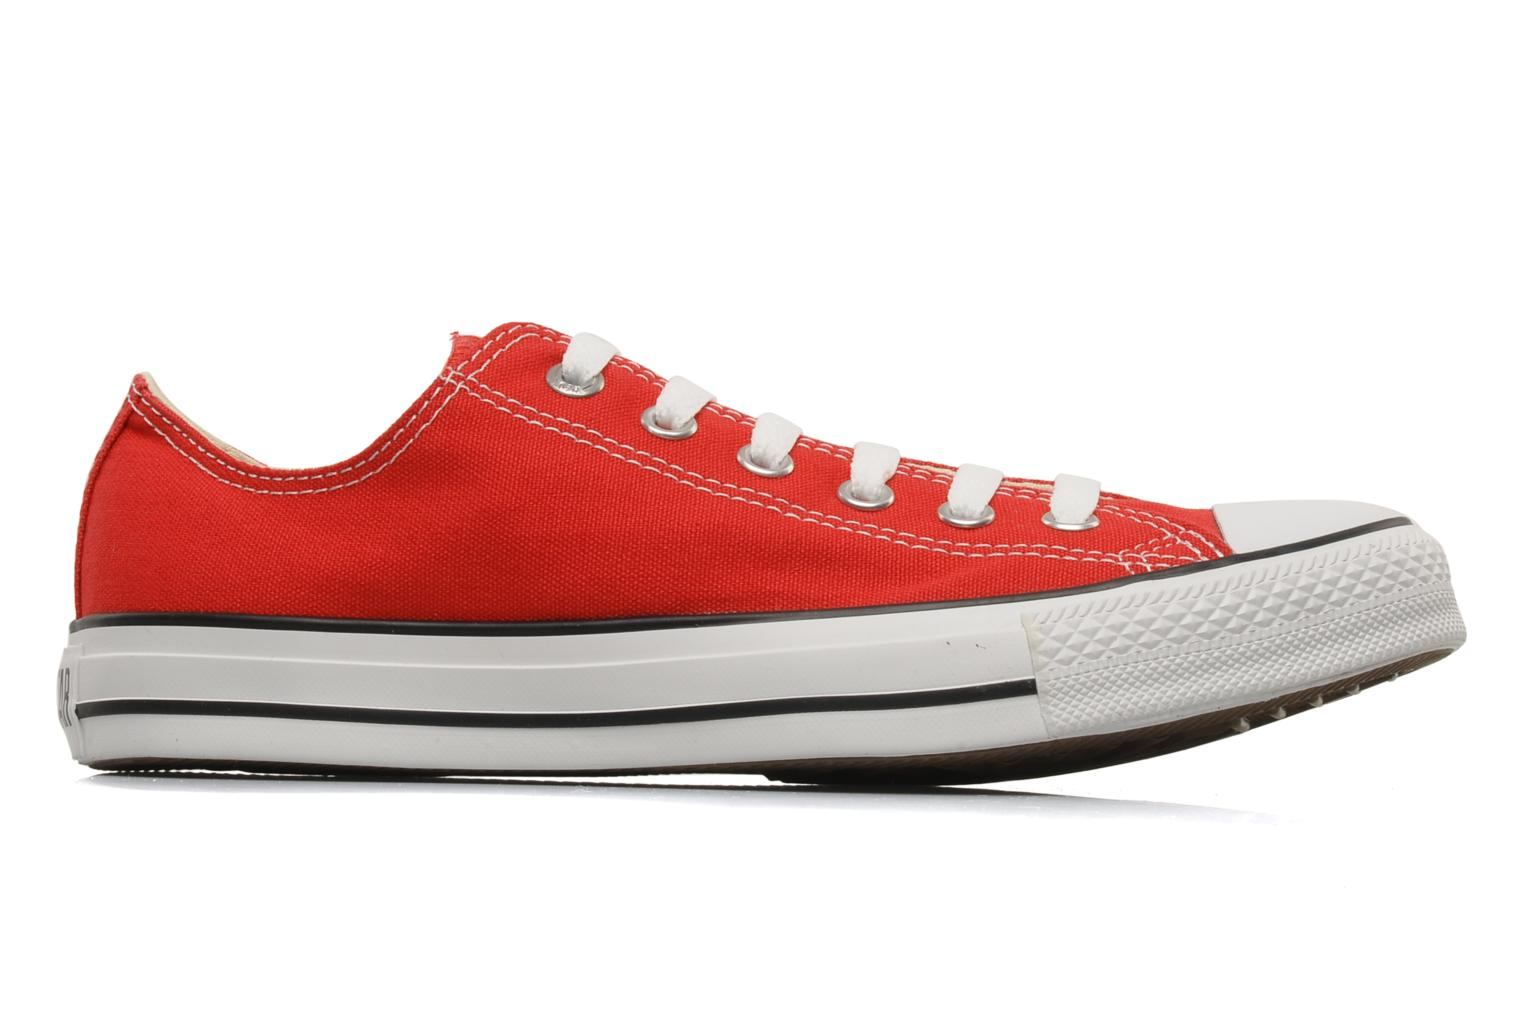 M Chuck Star Rouge Ox Converse All Taylor y0OvNnw8m